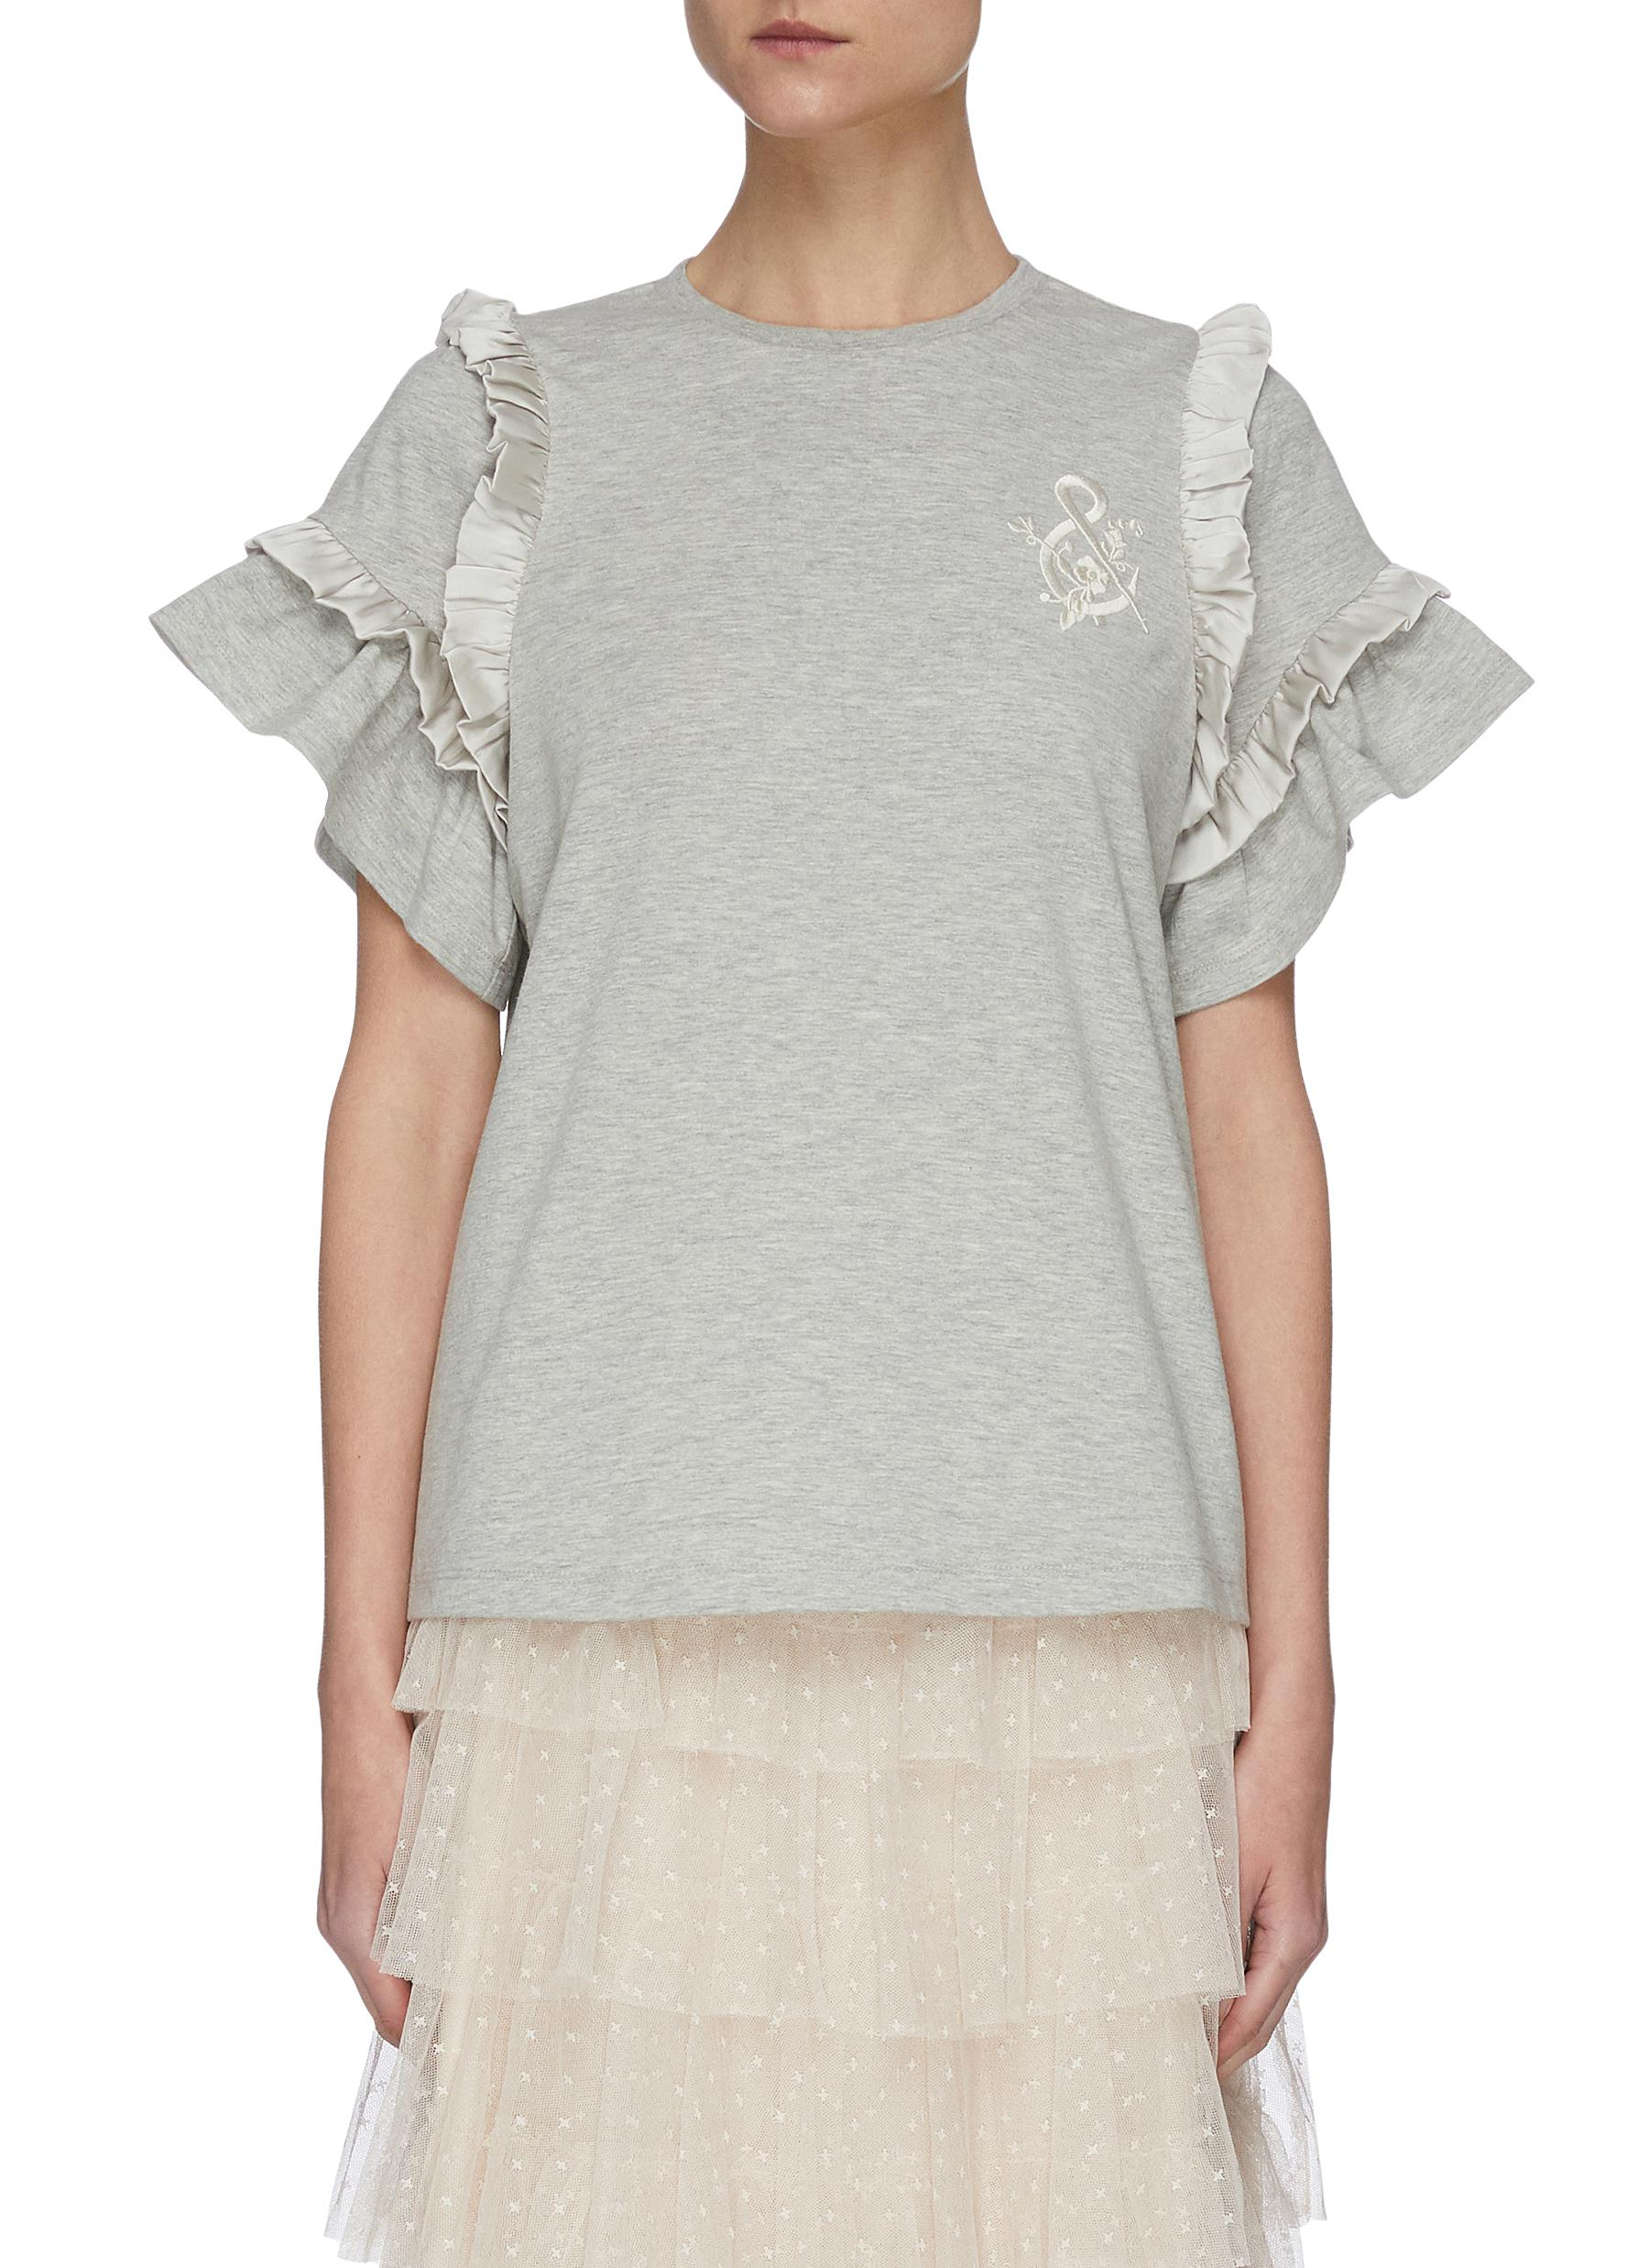 Buy Needle & Thread Tops 'Lara' logo embroidered ruffle T-shirt